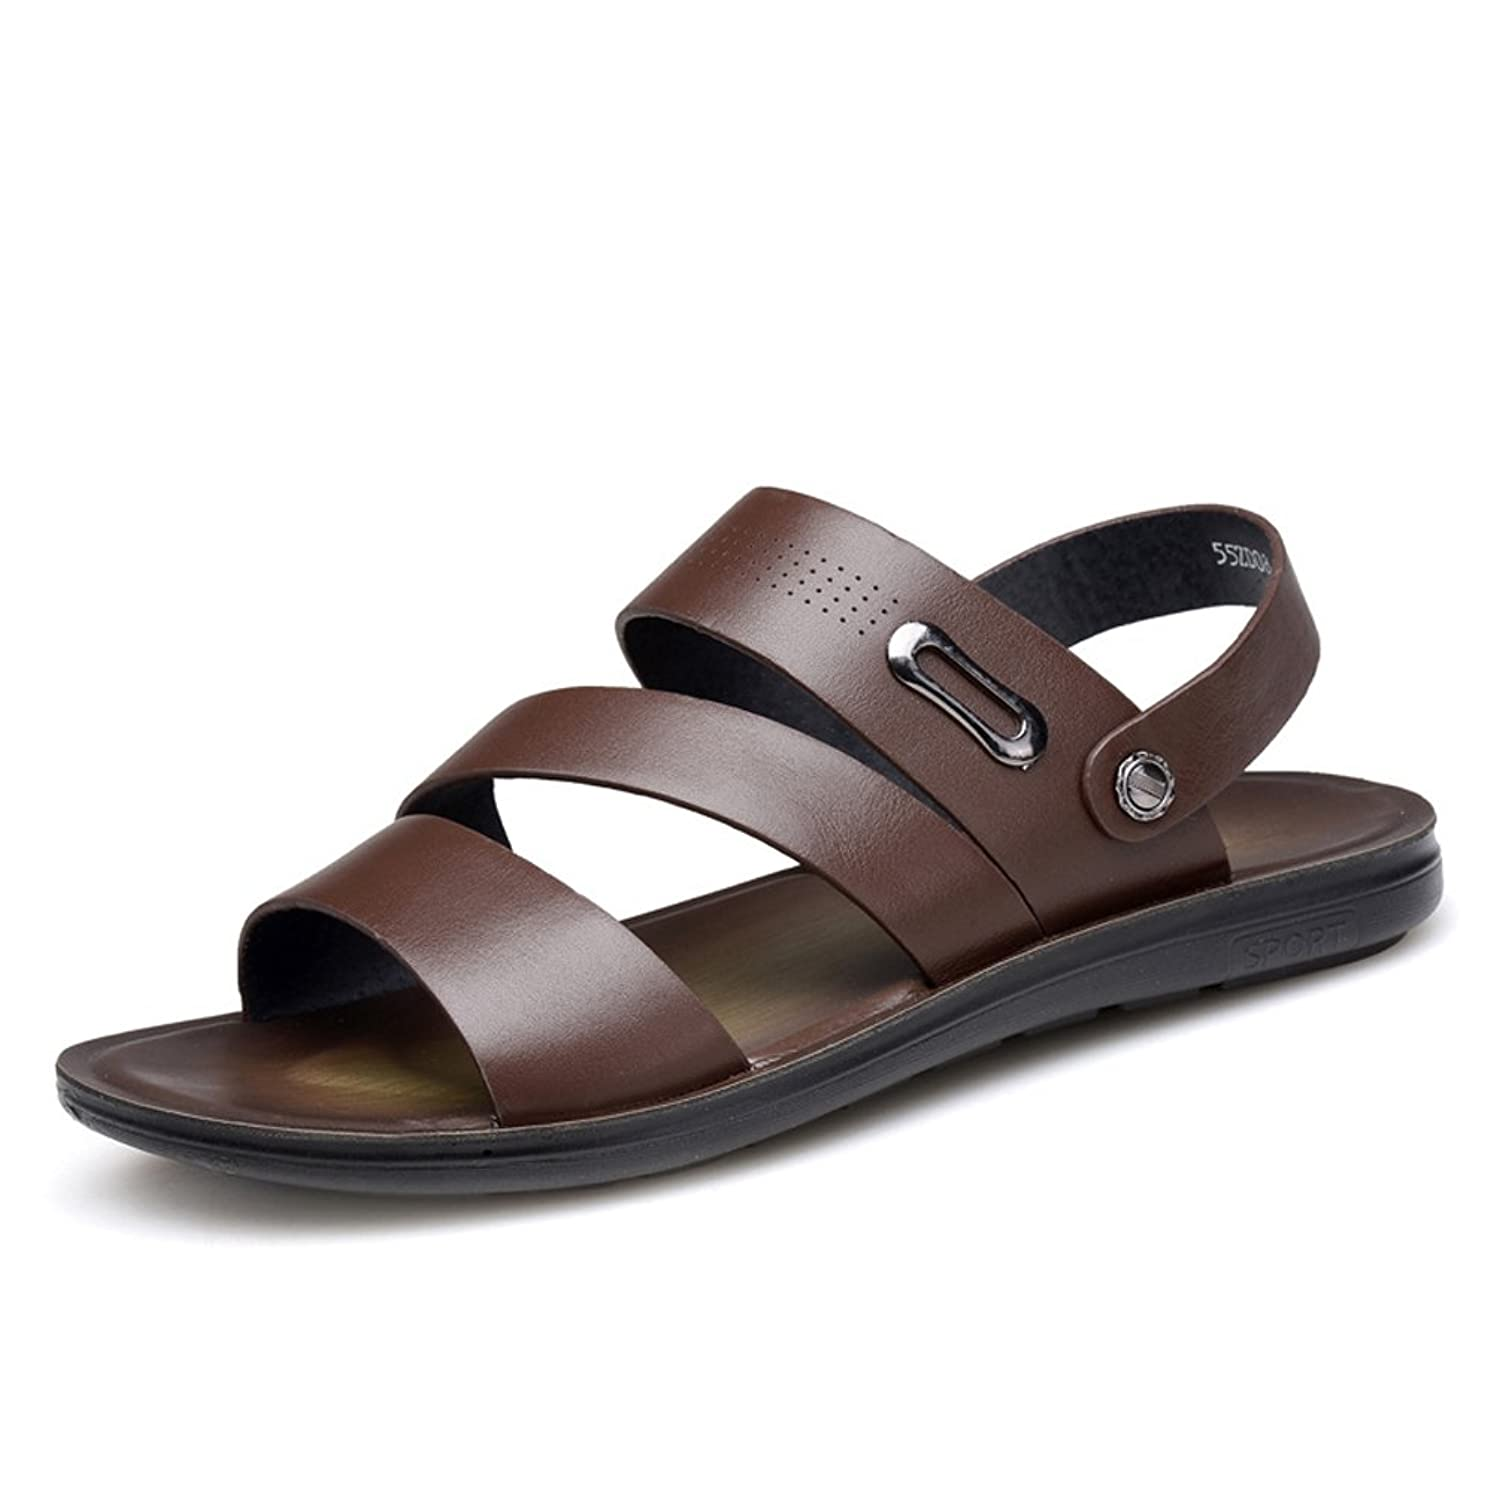 AFS JEEP Men's Open Toe Wide Strap Cross Leather Dress Sandal - Click Image to Close